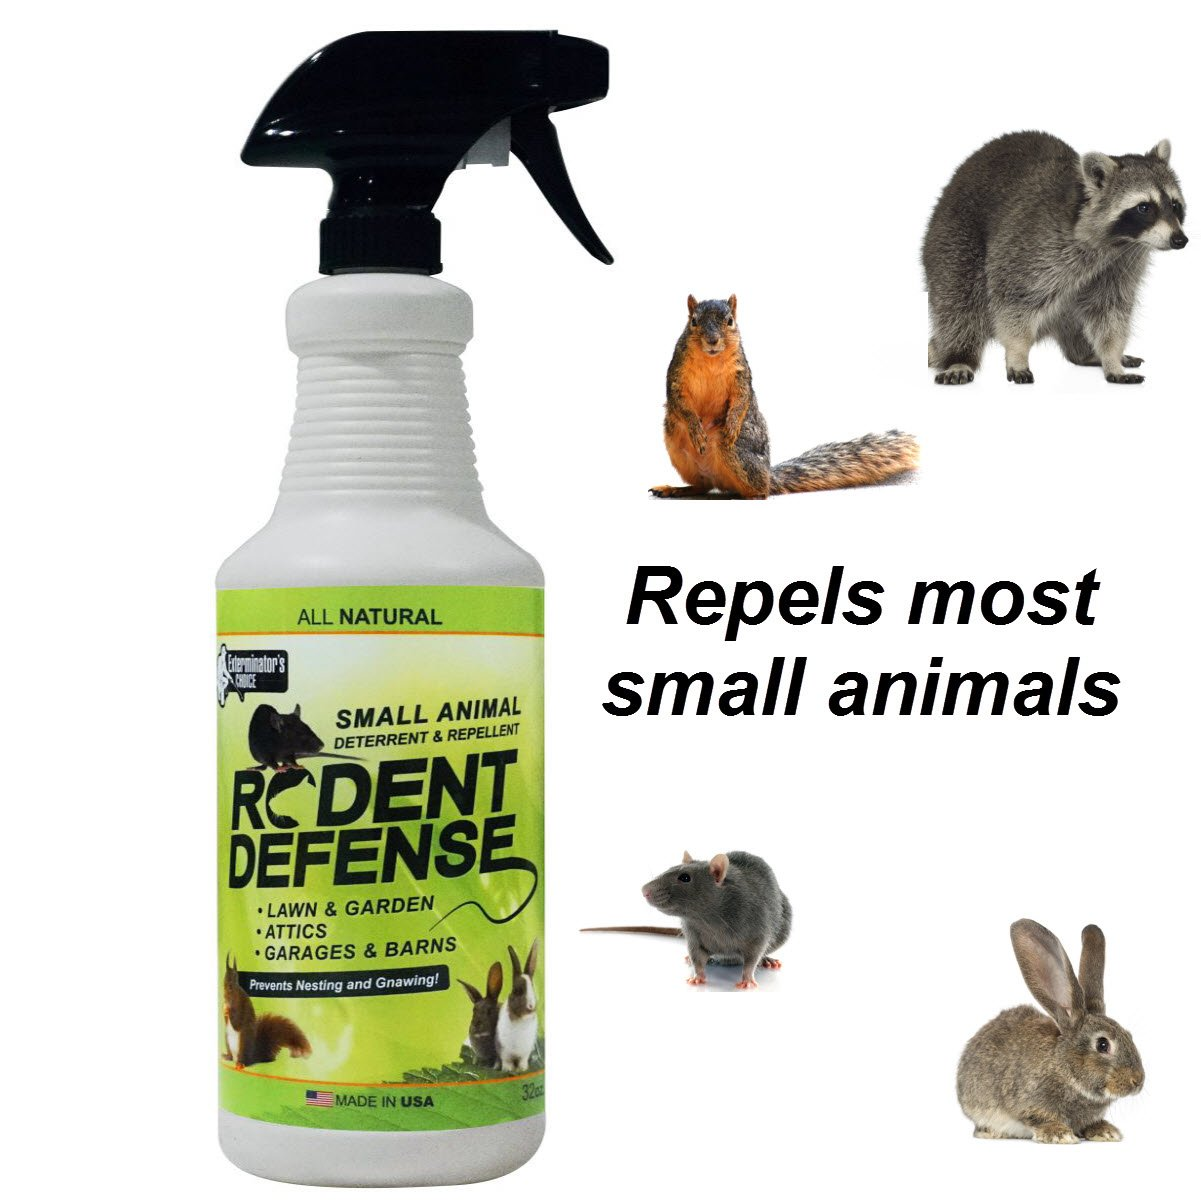 Exterminators Choice Small Animal Rodent Protection